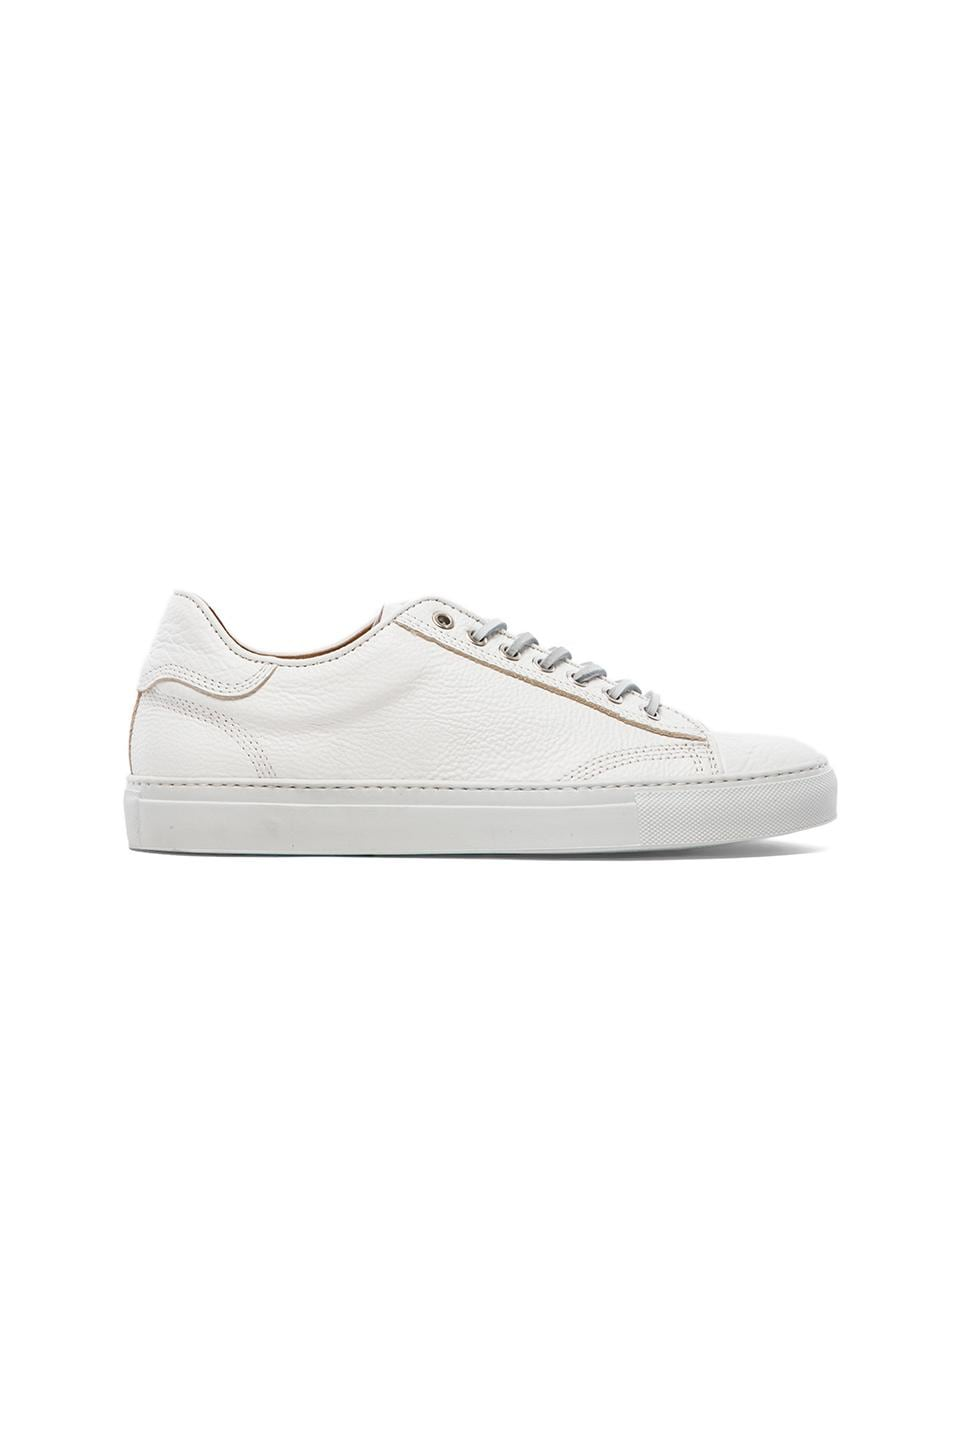 wings + horns Leather Low Top in White